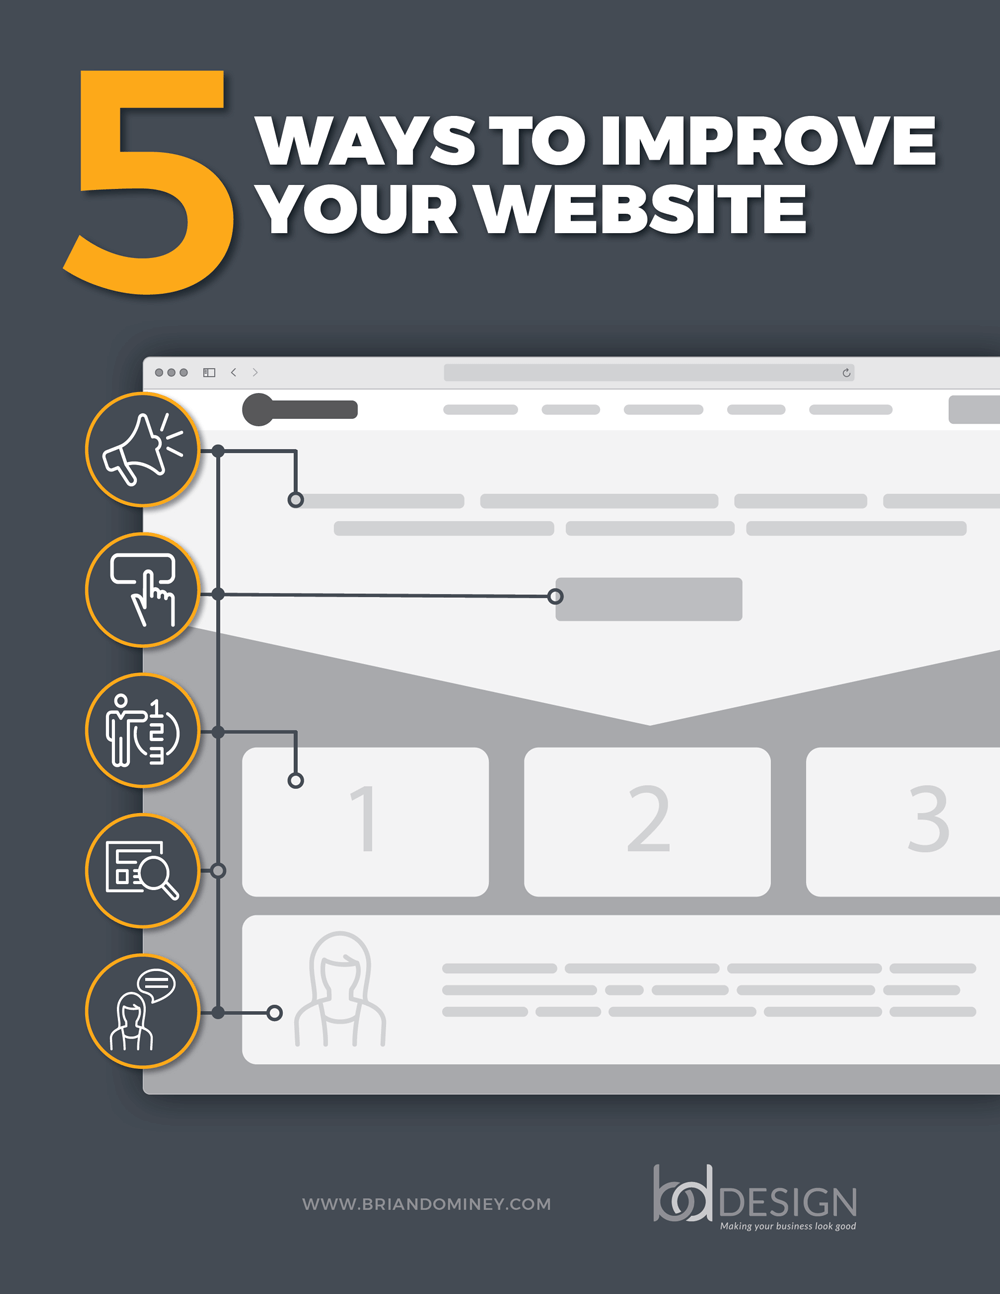 5 Ways To Improve Your Website